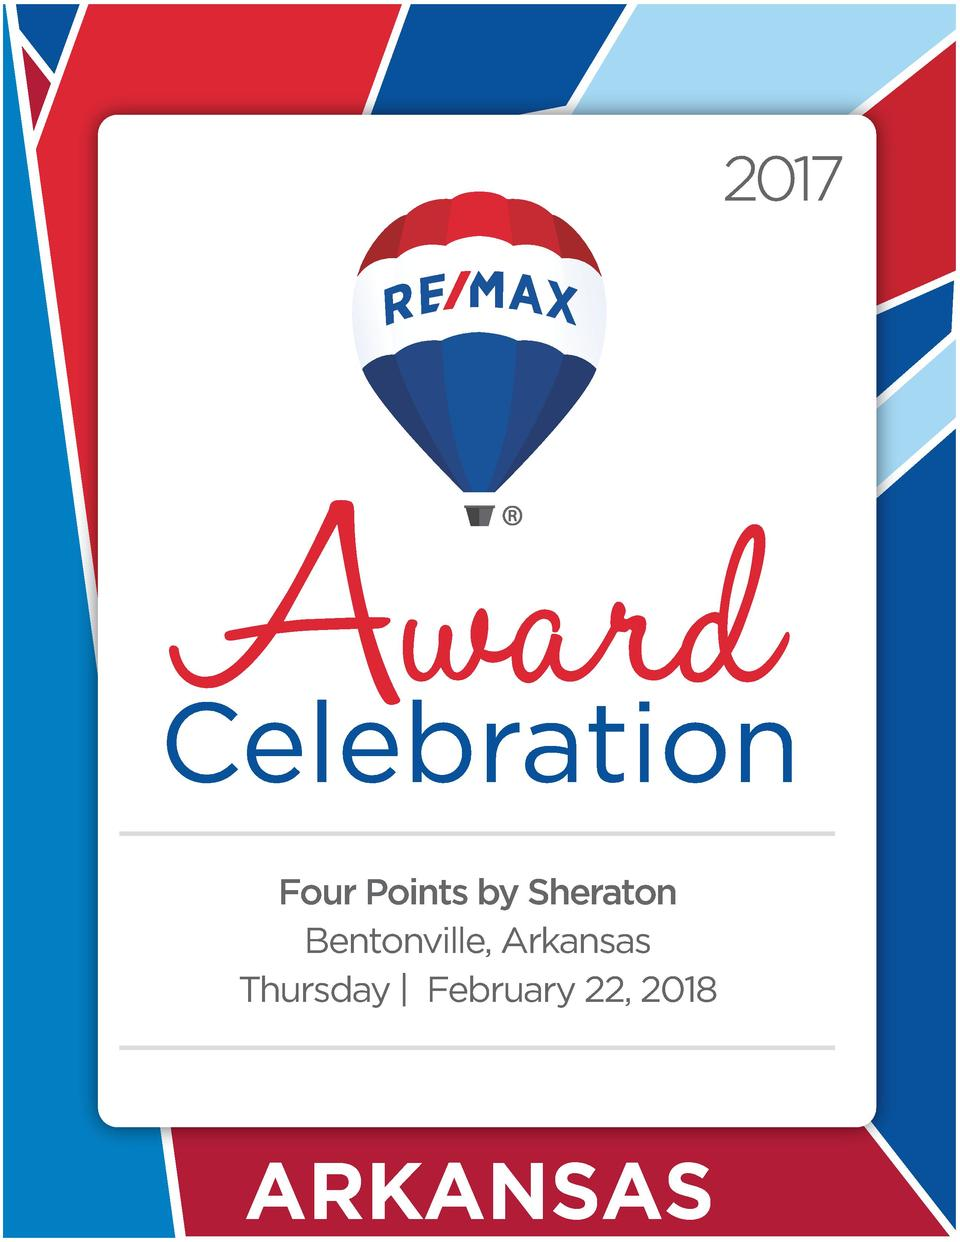 Four Points by Sheraton Bentonville, Arkansas Thursday   February 22, 2018  ARKANSAS